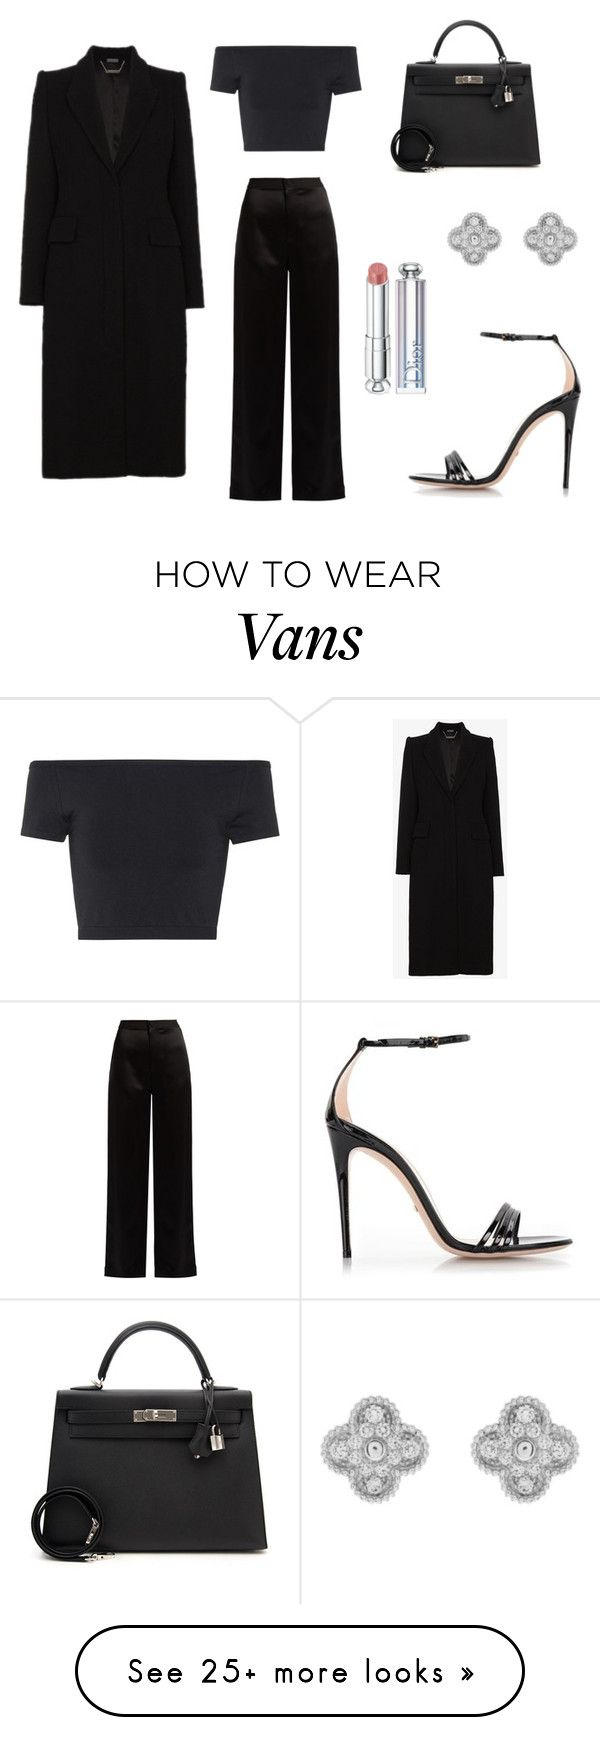 """Untitled #530"" by cxndai on Polyvore featuring Lanvin, Hermès, Gucci, Helmut Lang, Christian Dior, Van Cleef & Arpels and Alexander McQueen"